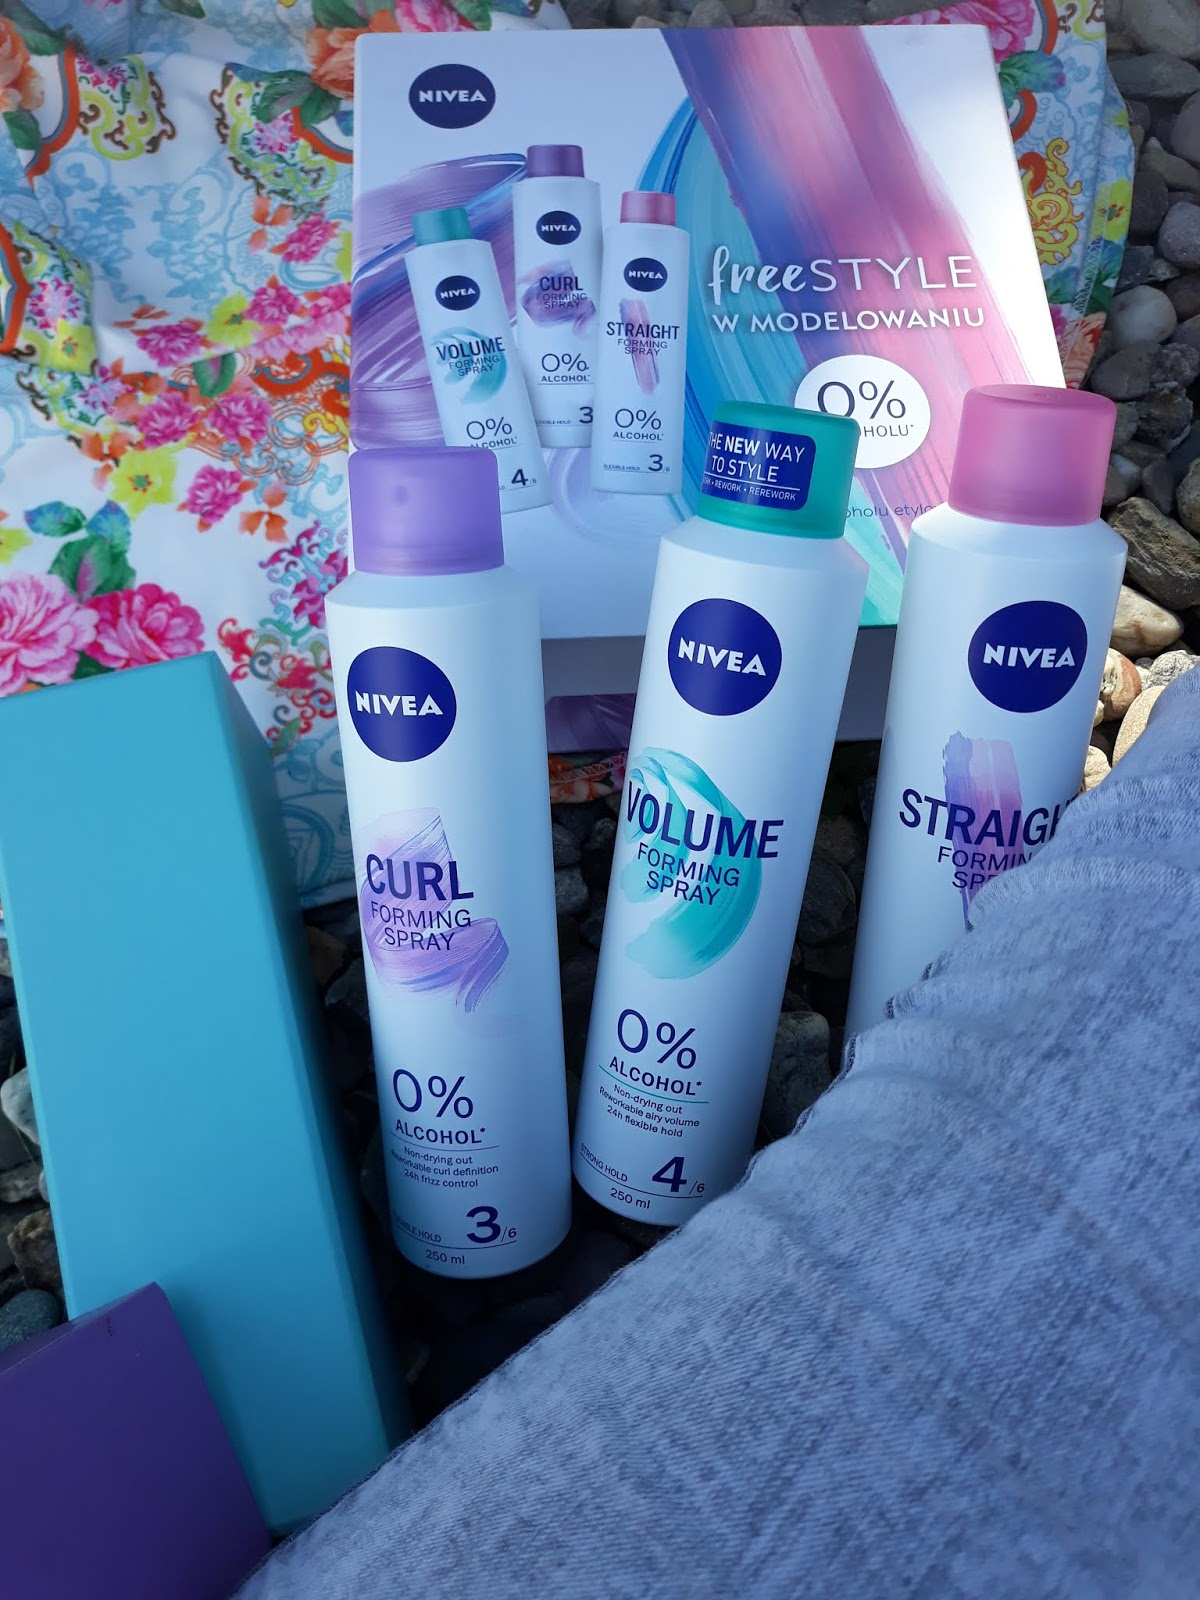 Forming Spray Nivea